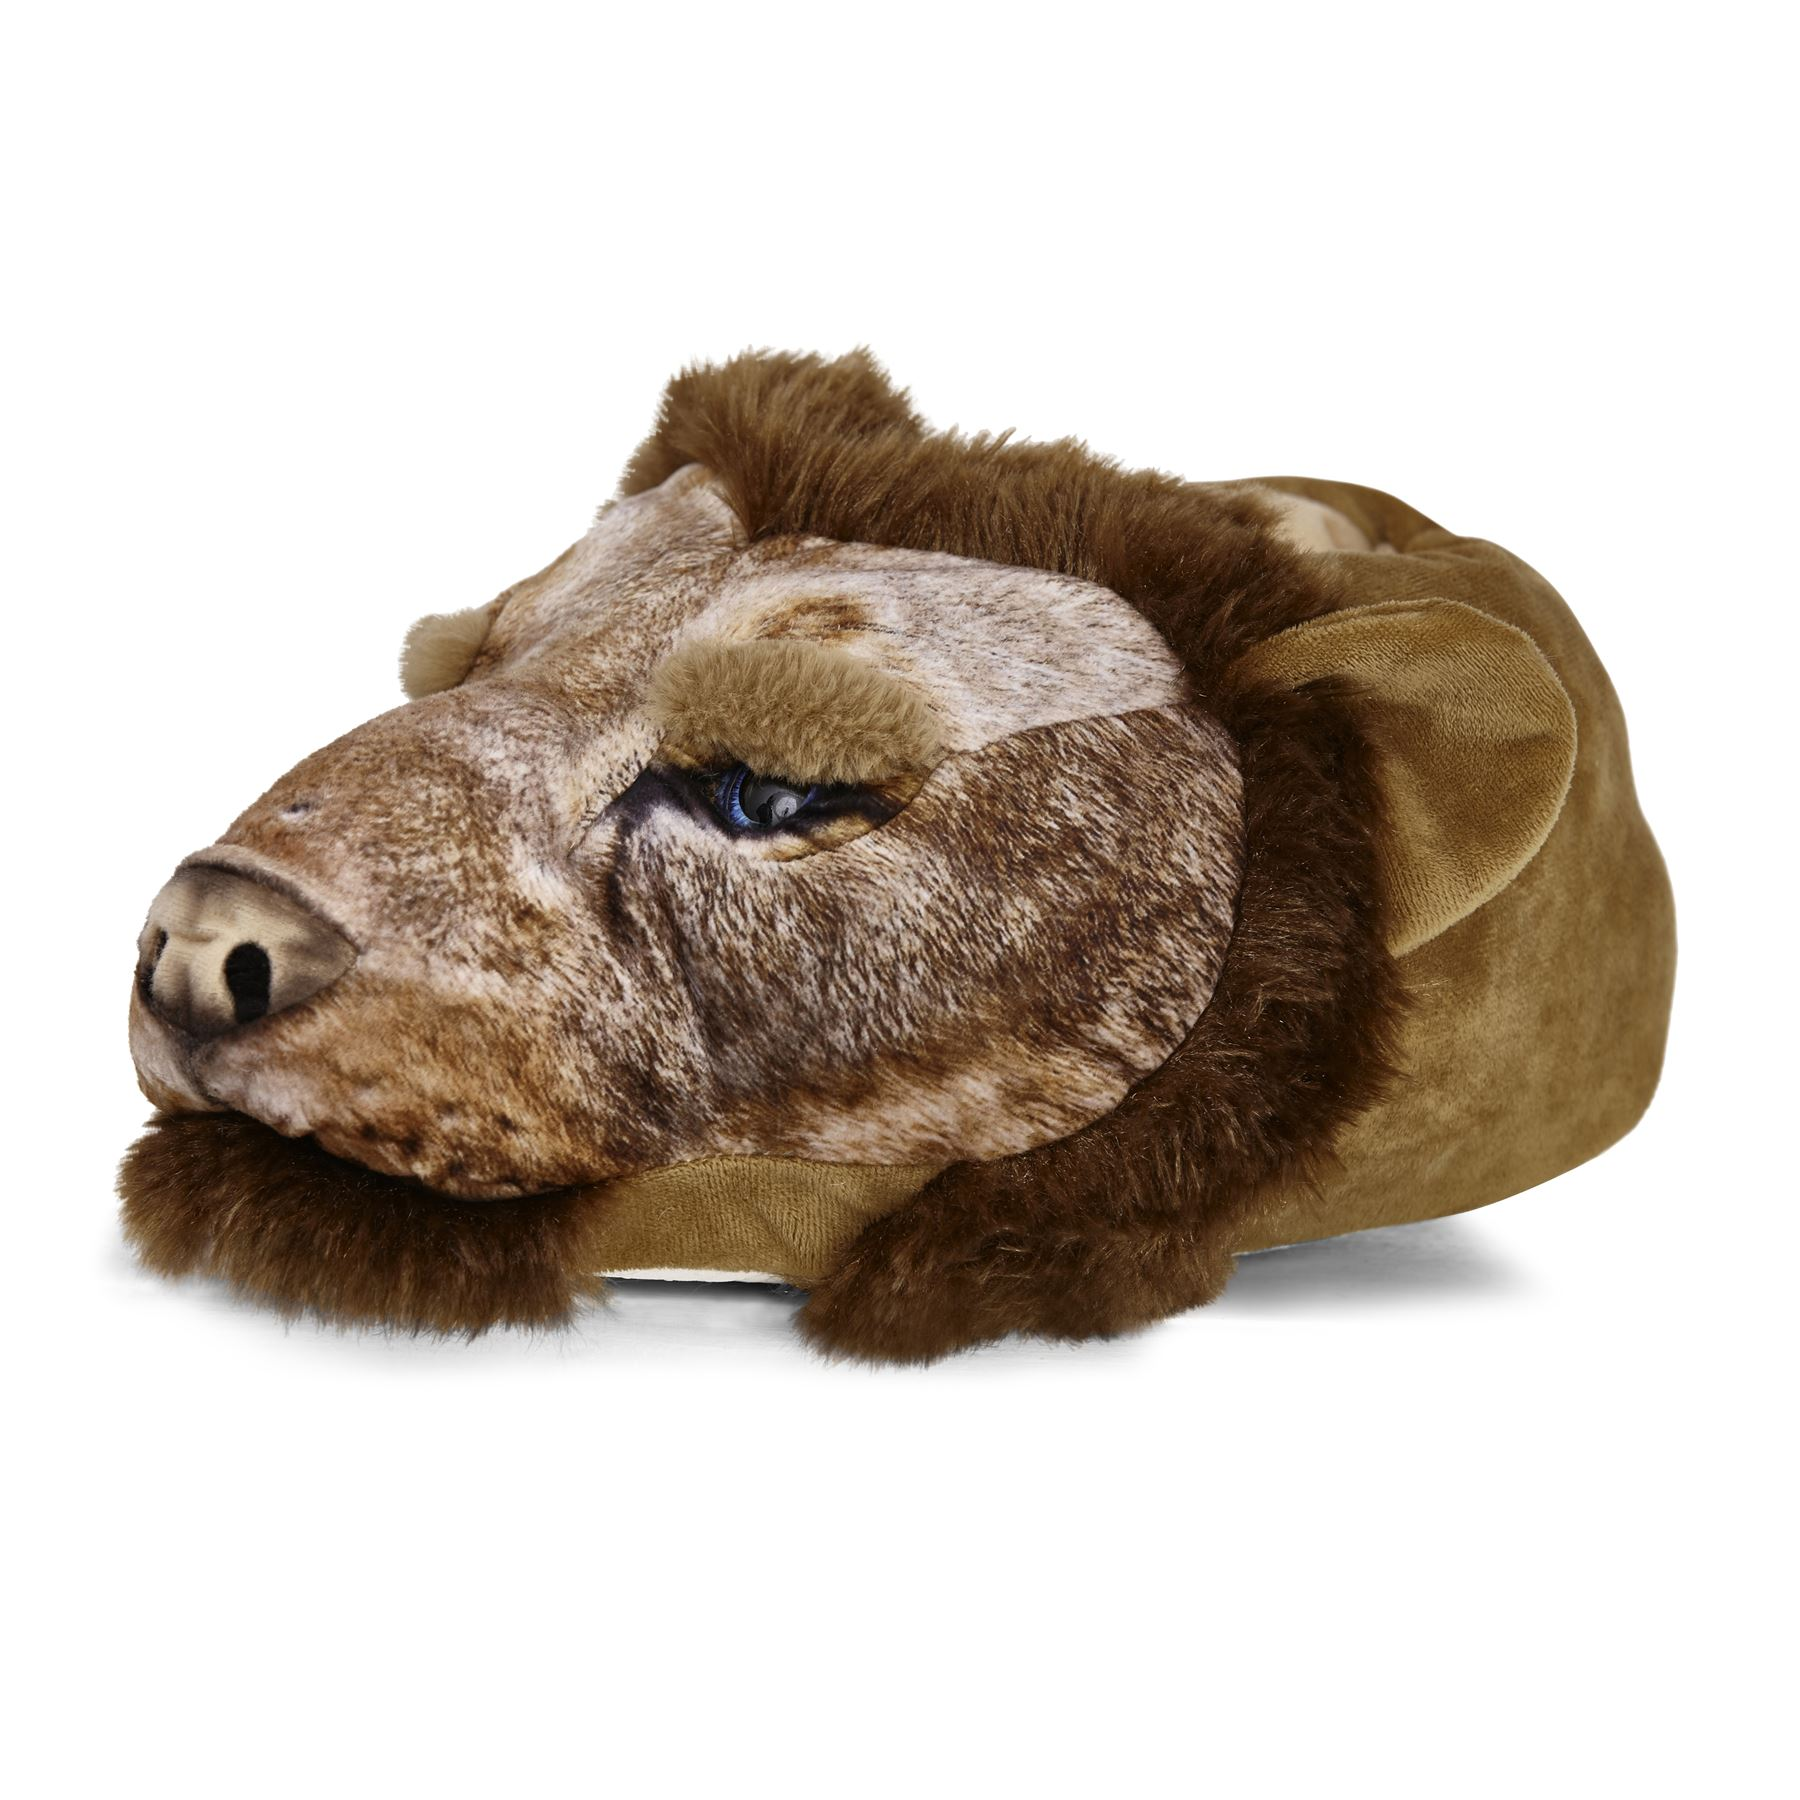 Mens-Undercover-3D-Soft-Comfy-Character-Novelty-Animal-Monster-Feet-Slippers thumbnail 10